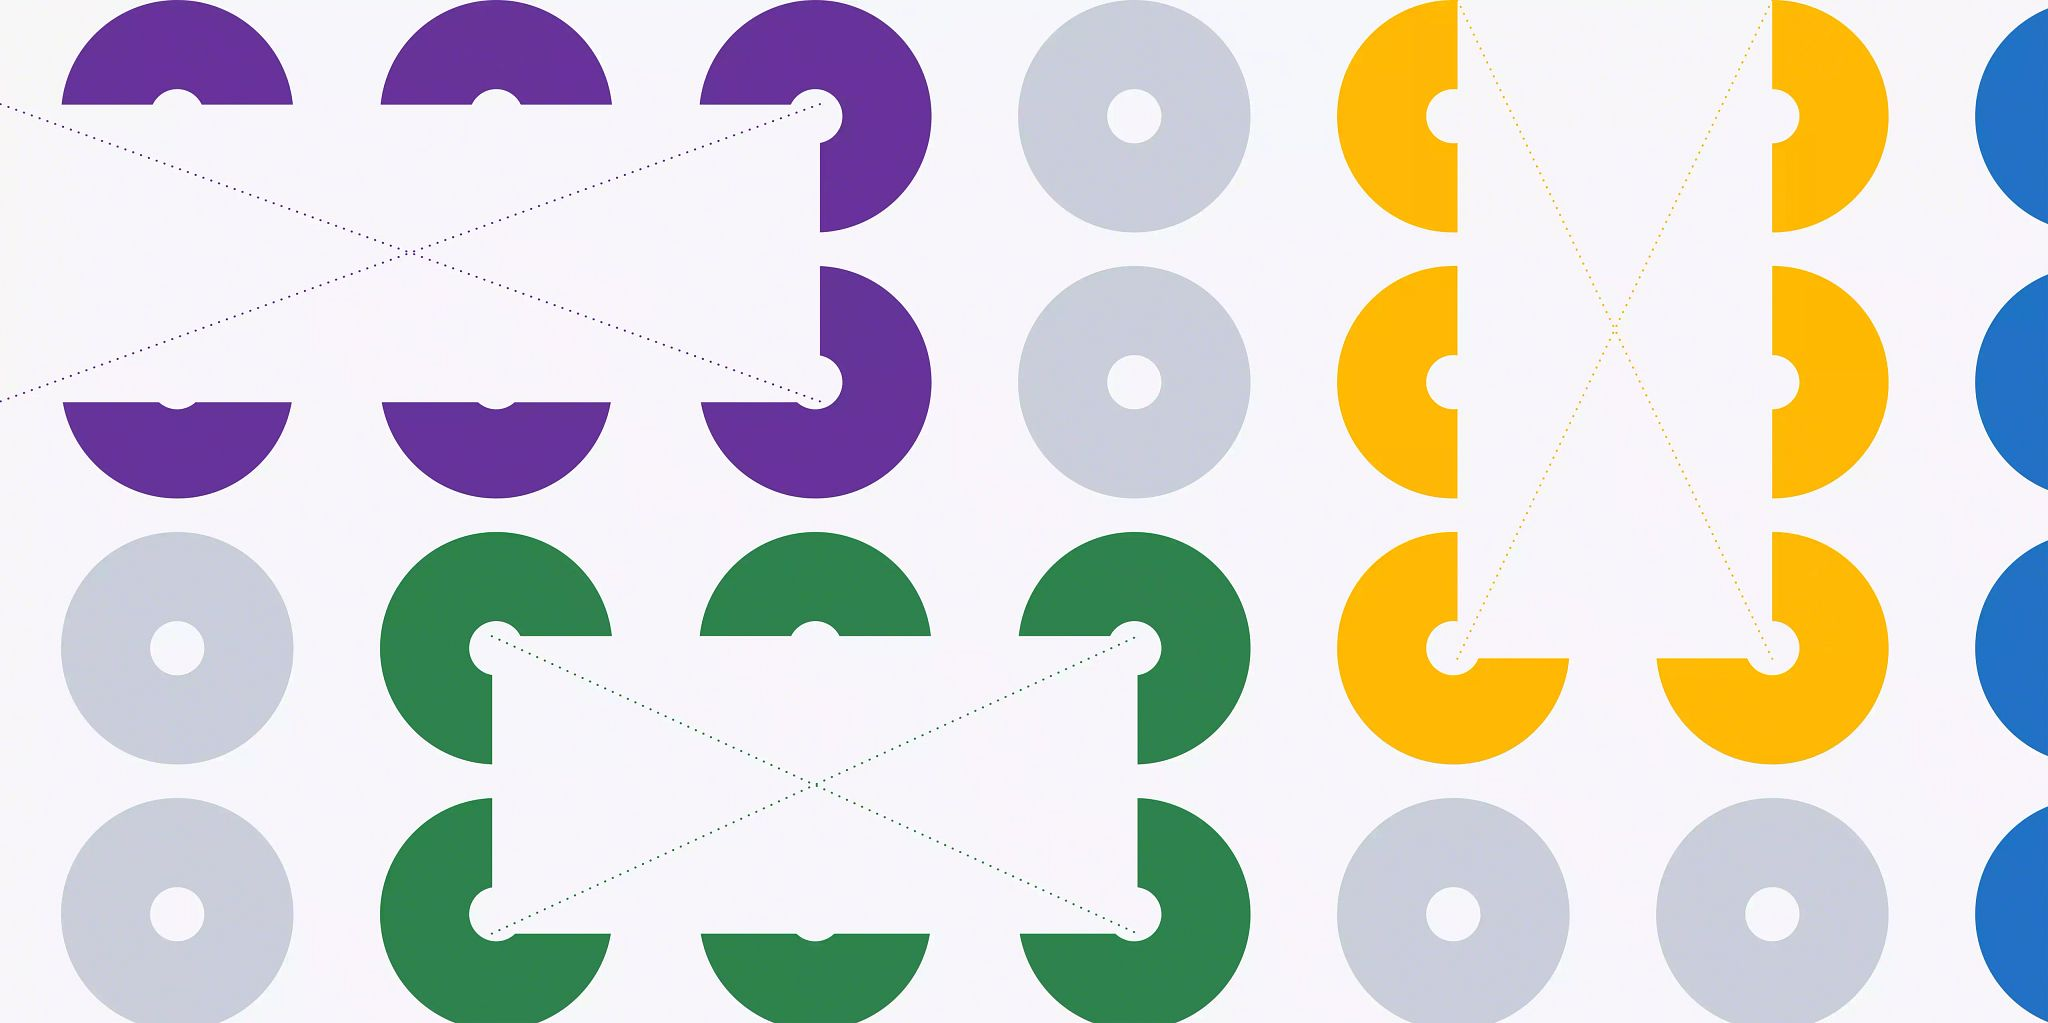 """Six and a half vertical lines of four solid colored circles with a small white circle in the center of each of them. The circles are in groups of six by color with two gray circles separating the groupings. Overlaid on each of the group of colored circles is a white rectangle with an """"X"""" stretching from corner to corner comprised of small dots that are the same color as the circle grouping."""